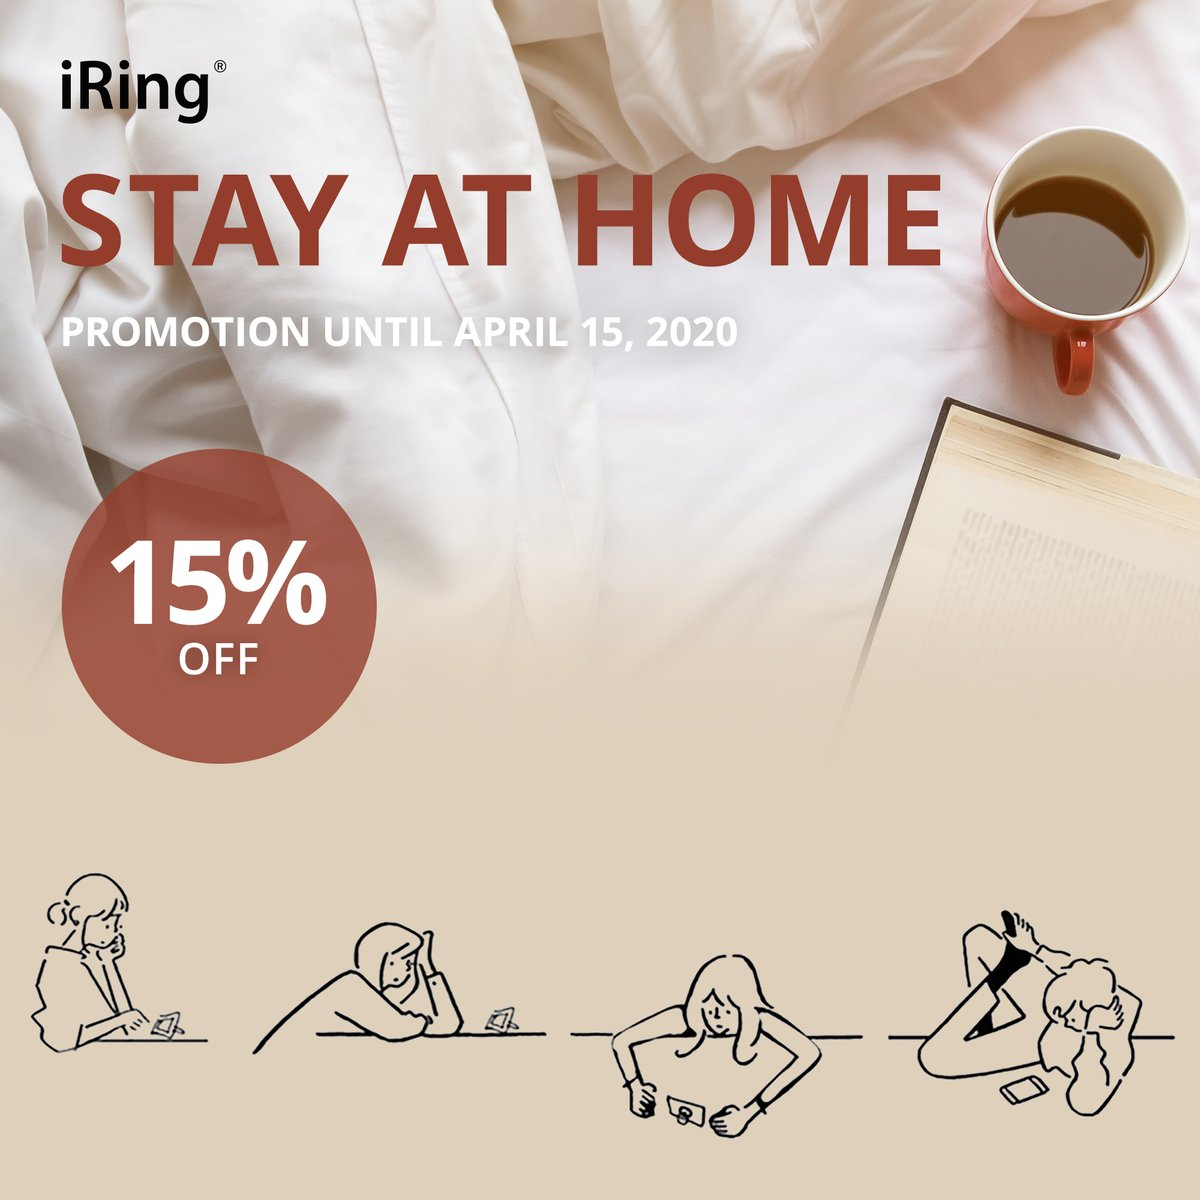 It's good to be home, Stay safe everyone!   Get your 15% discount on your purchase by using the promo code.  Click here: https://iring.com/pages/stay-at-home-promotion…  #iring #iringoriginal #ringholder #iphone #andriod #mobile #mobilephone #phoneaccessories #aauxx #stayathome #iringpromotionpic.twitter.com/rvPQEJ395R